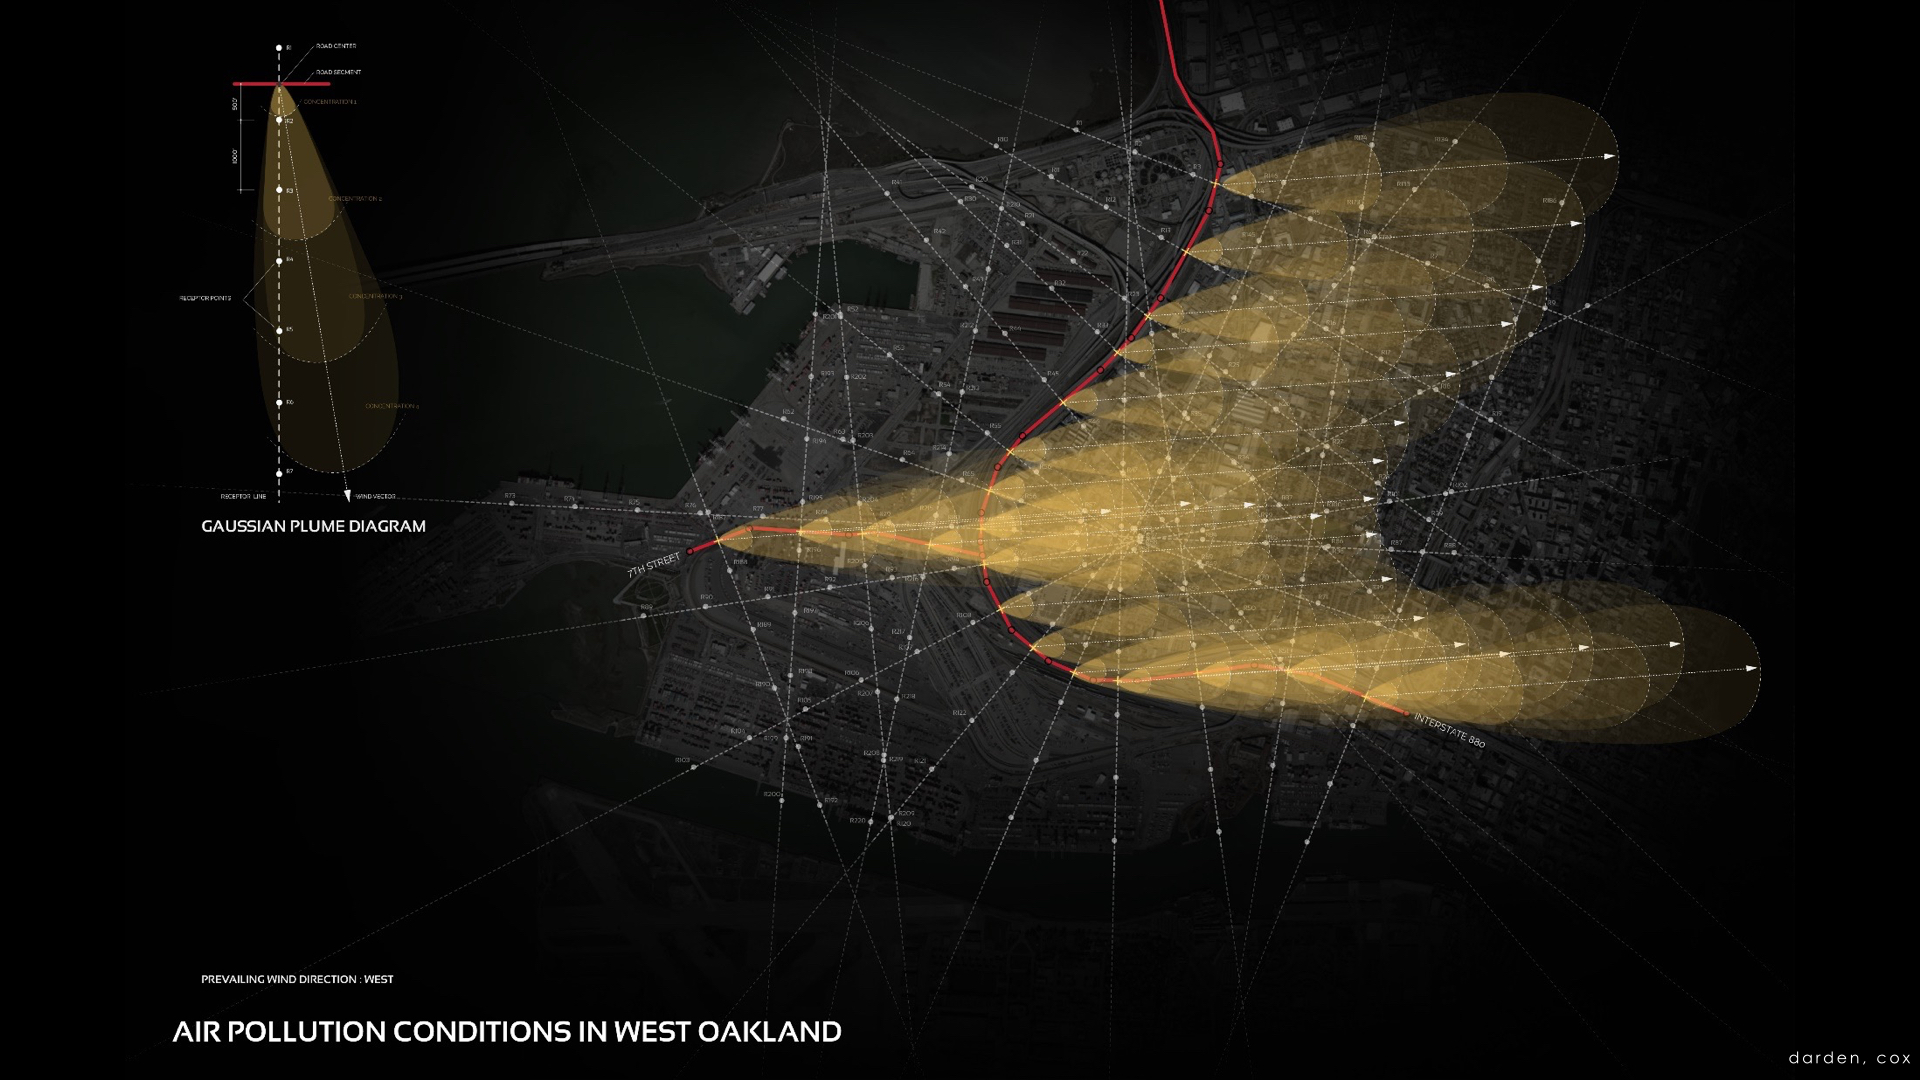 An analysis of particulate matter traveling over West Oakland. Image: Prentiss Darden, Silvia Cox